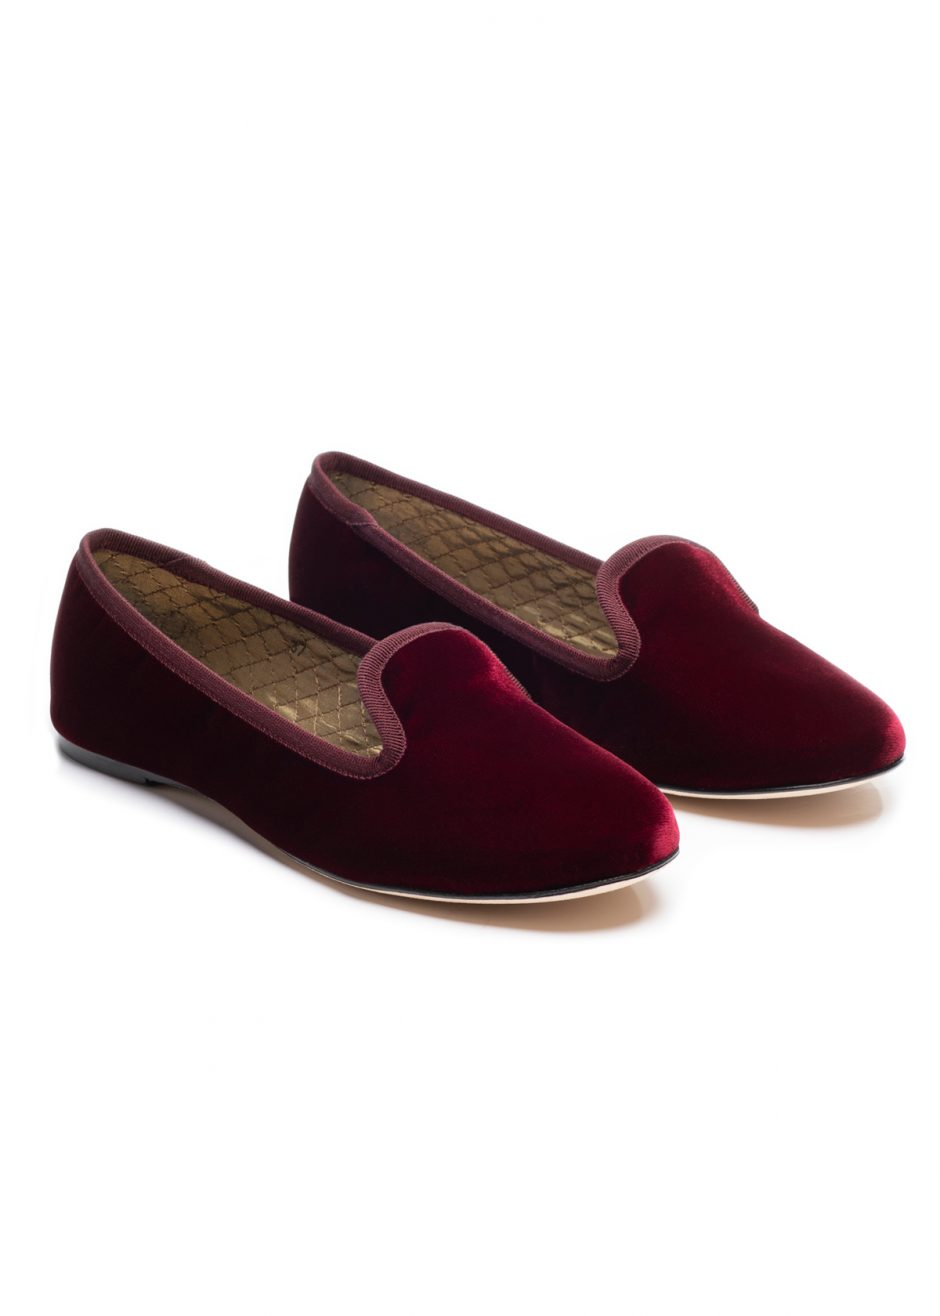 Casanova – Slipper bordeaux velvet